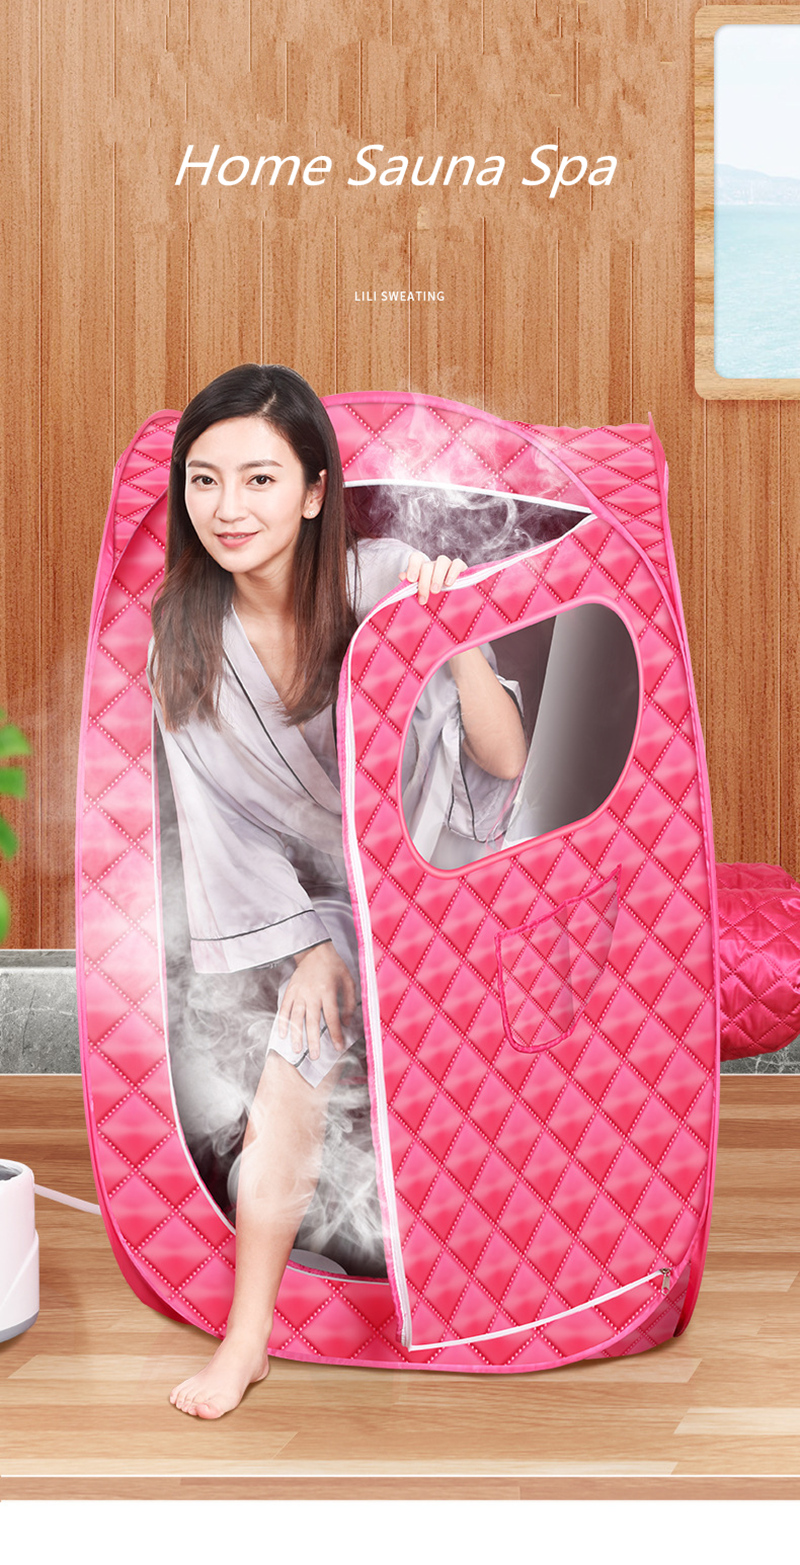 Portable Steam Sauna Bath for Health and Beauty Spa at Home Lose Weight Detox Therapy Steam Fold Sauna Cabin 14